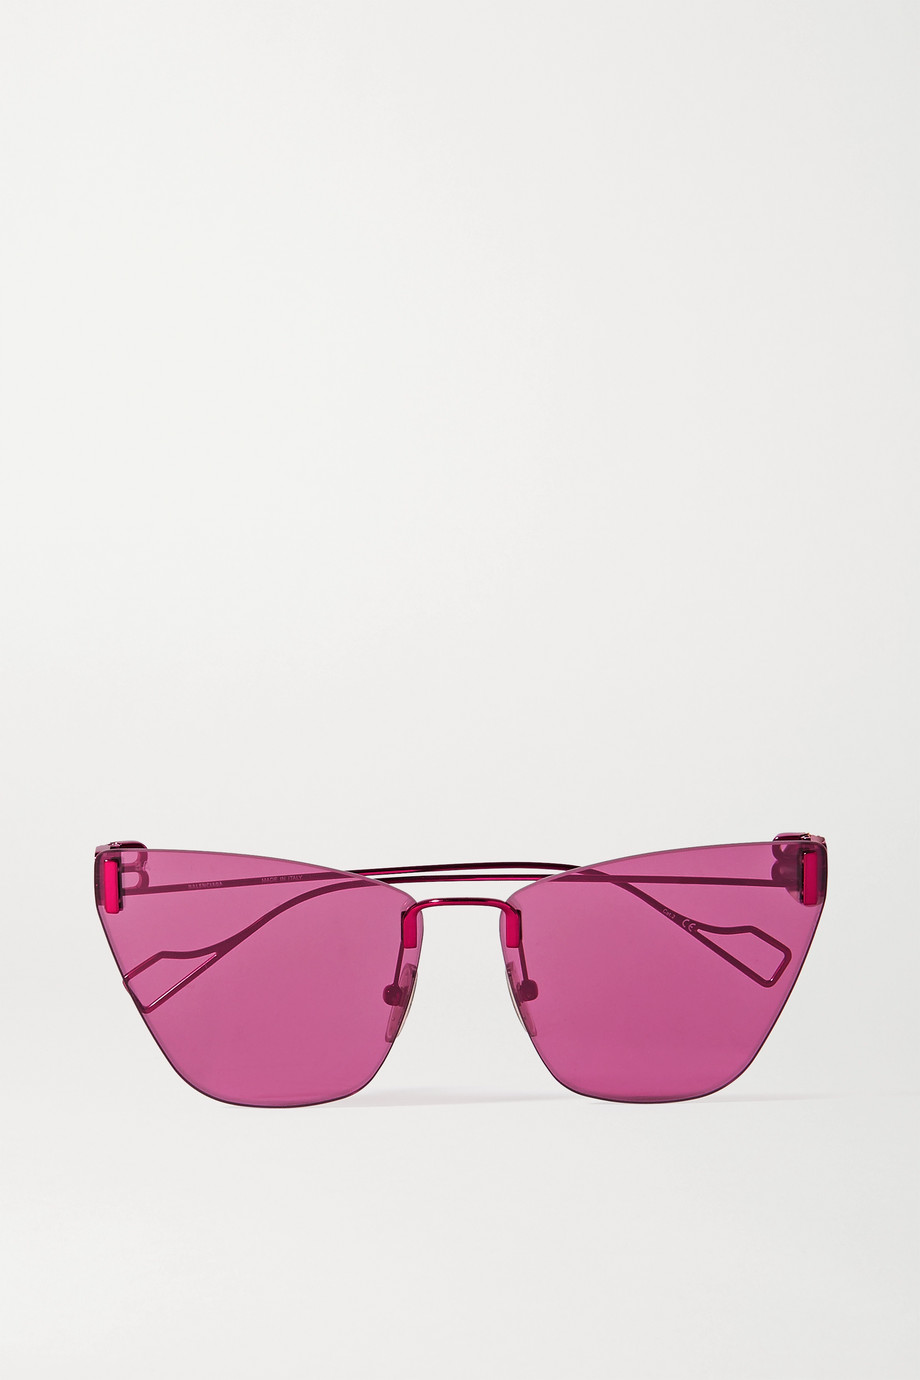 Balenciaga Cat-eye metal sunglasses